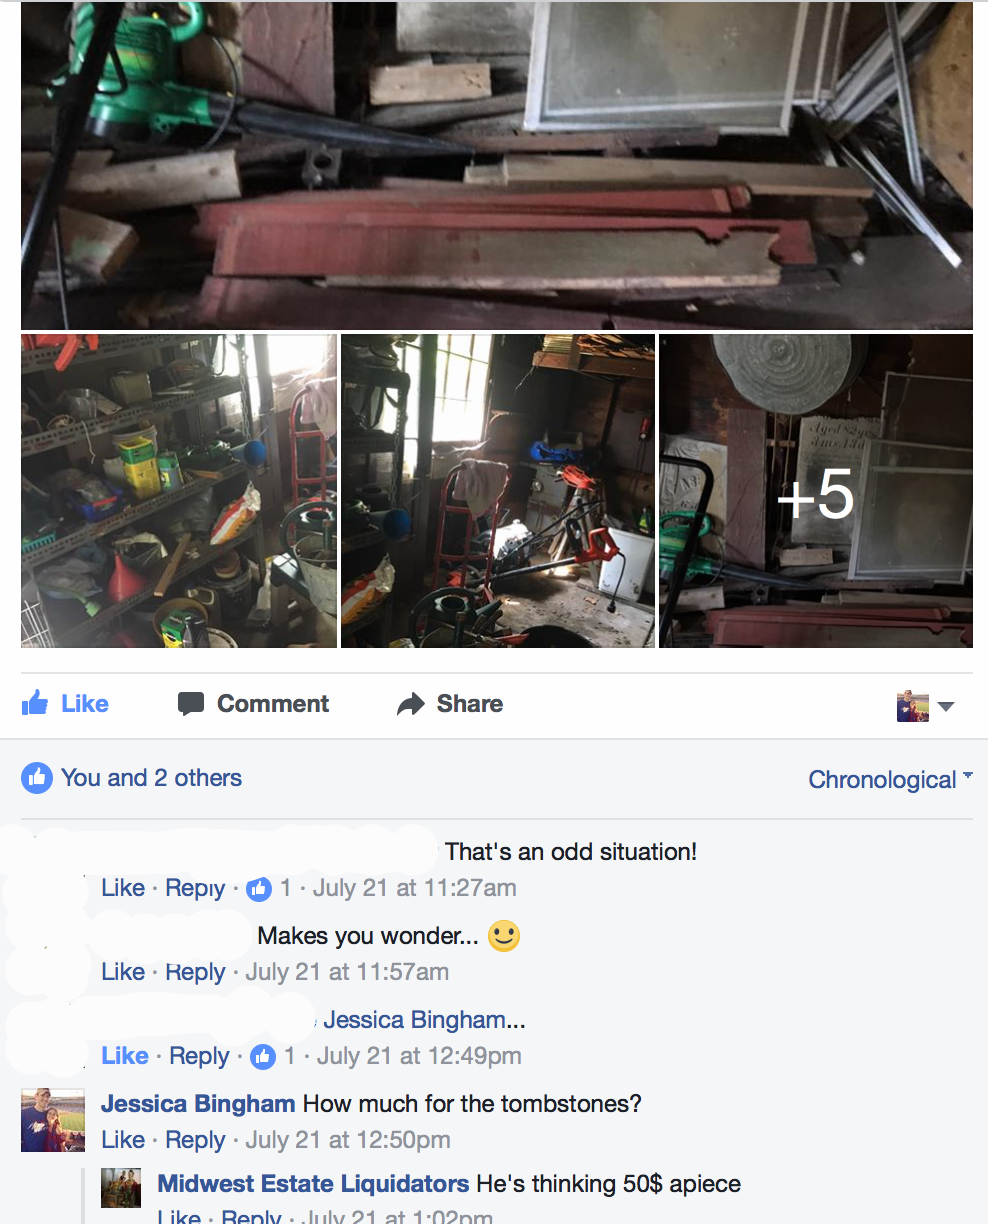 Facebook thread about the sale of Asenath's tombstone.